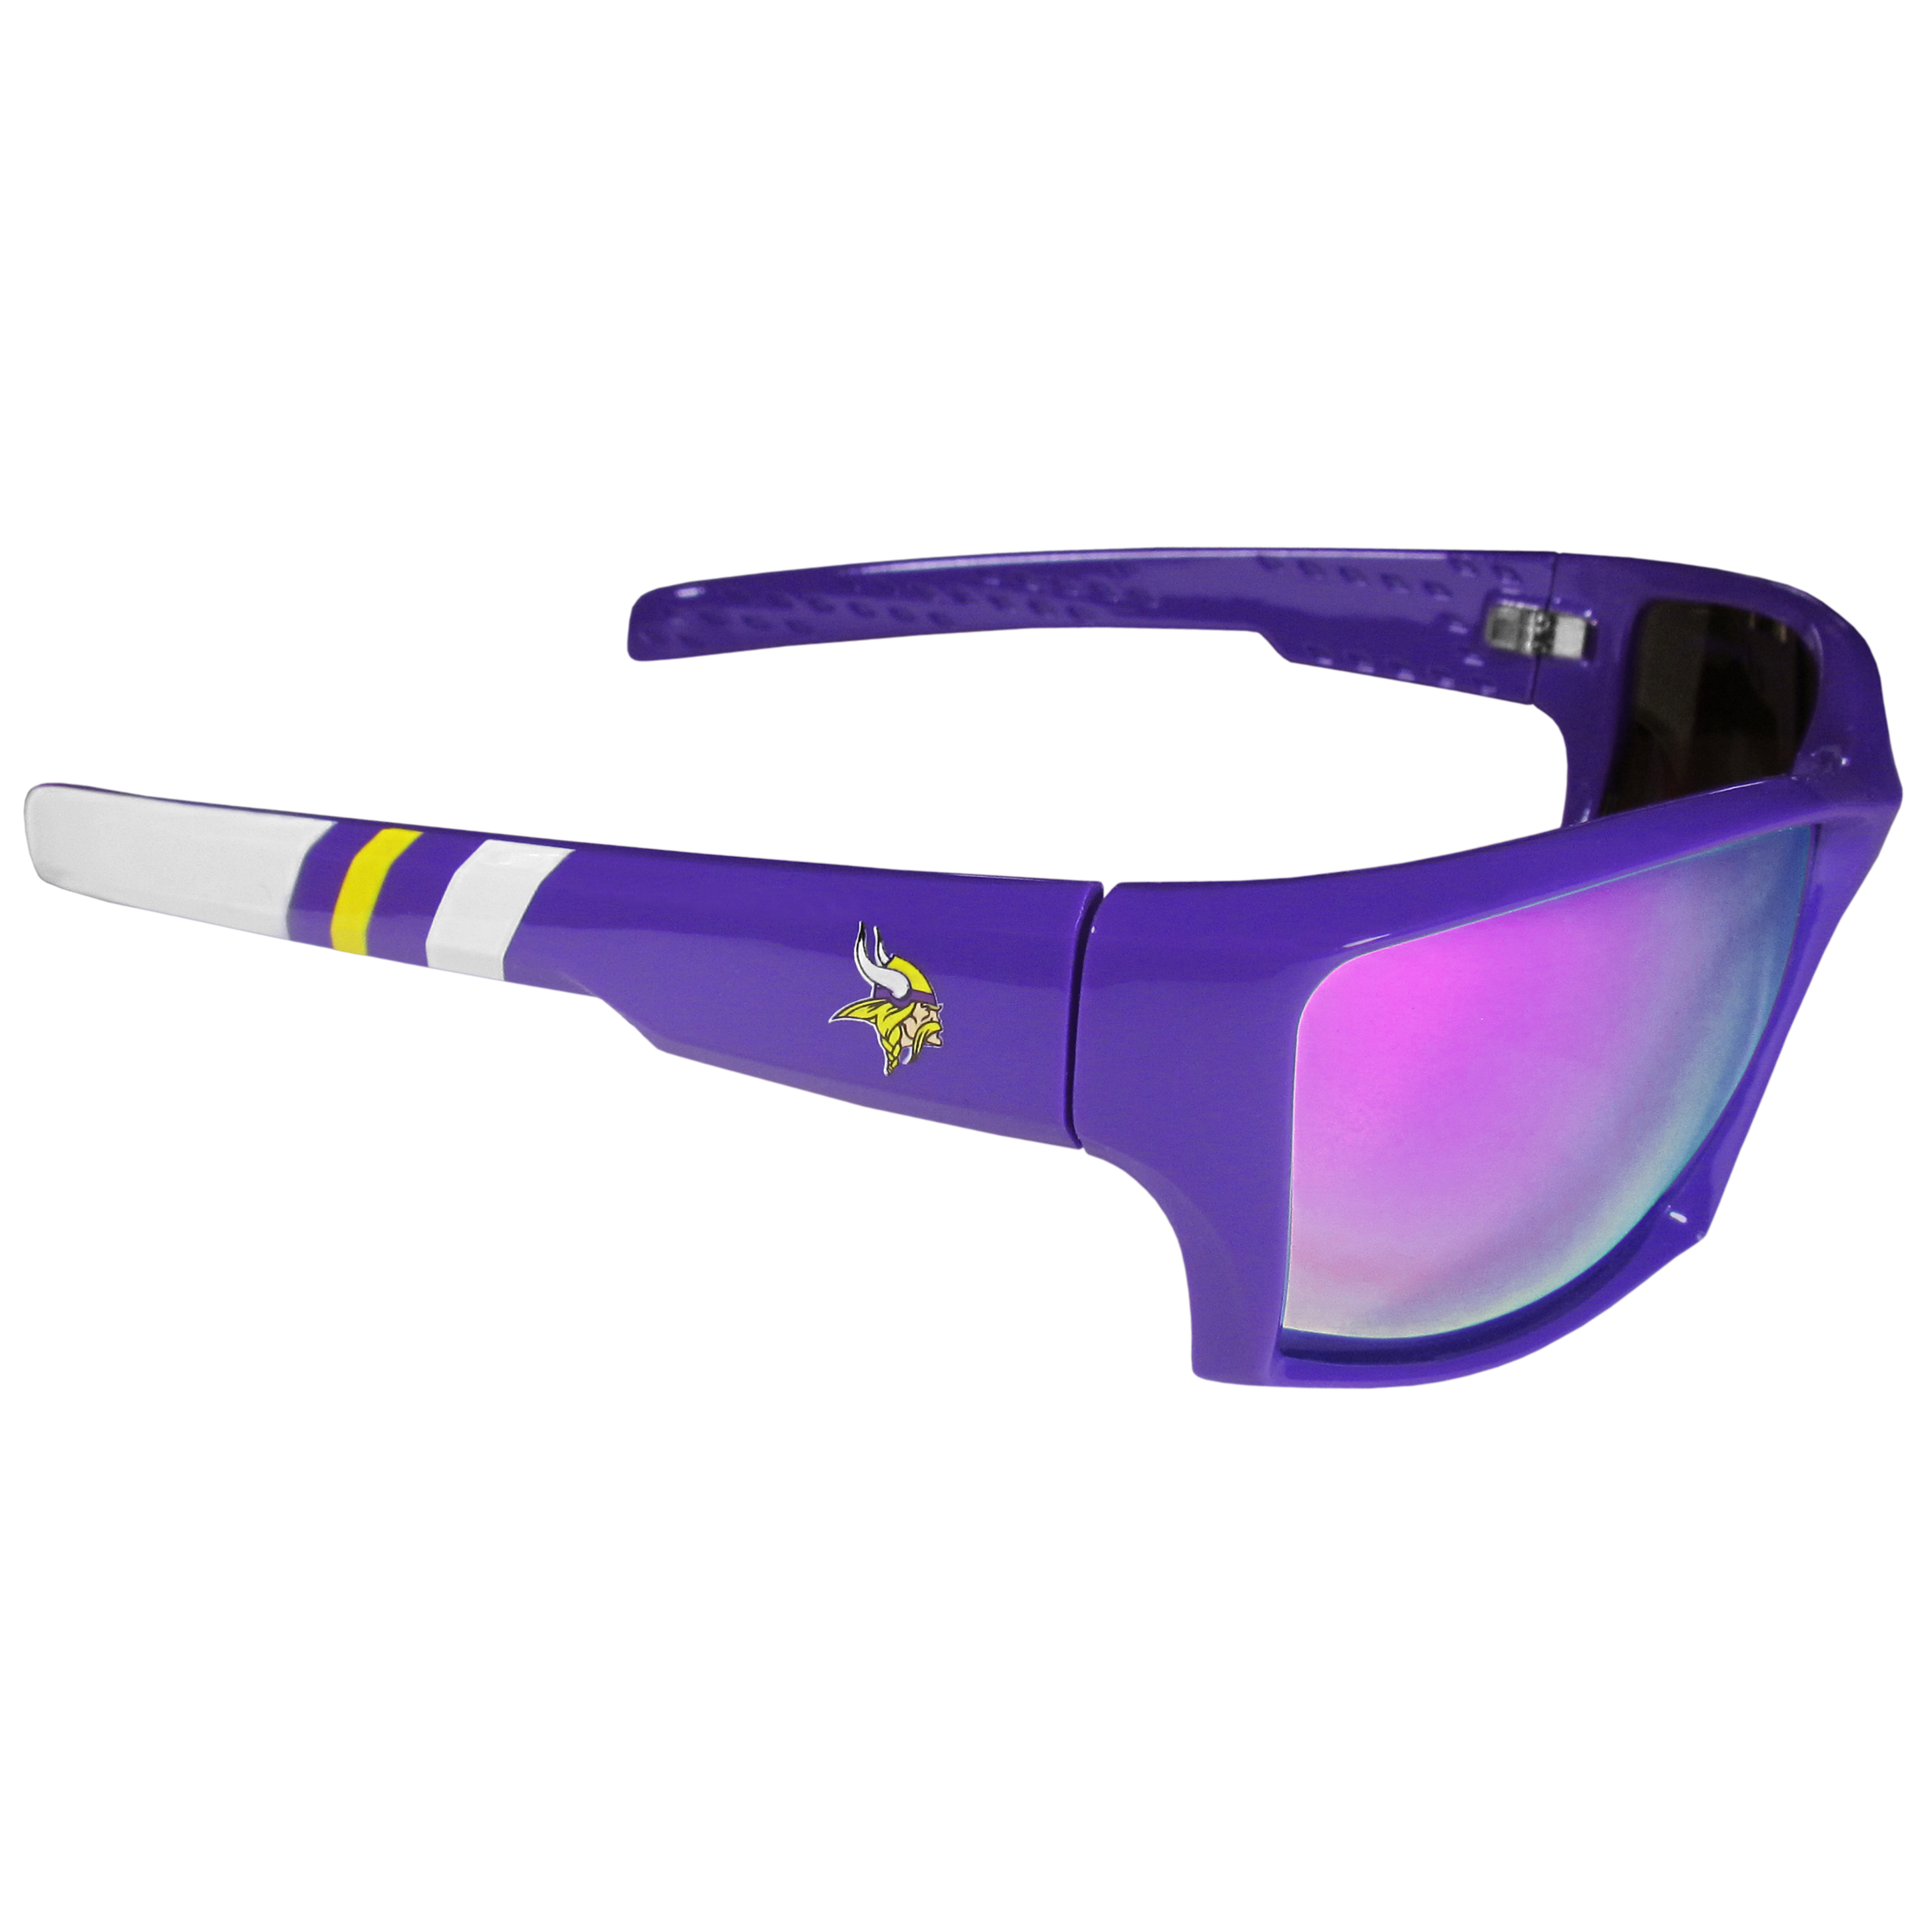 Minnesota Vikings Edge Wrap Sunglasses - Be an icon of edgy style while you're in the stadium cheering your Minnesota Vikings to victory with our polarized wrap sunglasses that feature 100% UVA/UVB rating for maximum UV protection. The light-weight frames are built to last with flex hinges for comfort and durability which make them perfect for driving or just lounging by the pool. The colorful rubber grips on the arms of these fashionable sunglasses make them perfect for someone with an active lifestyle. Whether you are hiking, fishing, boating, running on the beach, golfing or playing your favorite sport these designer frames will set you apart. Our edge wrap sunglasses are true quality eyewear at an affordable price. The wrap style frames come with team colored stripes and team logos so you can show off your die-hard team pride while protecting your eyes from those bright sun rays.